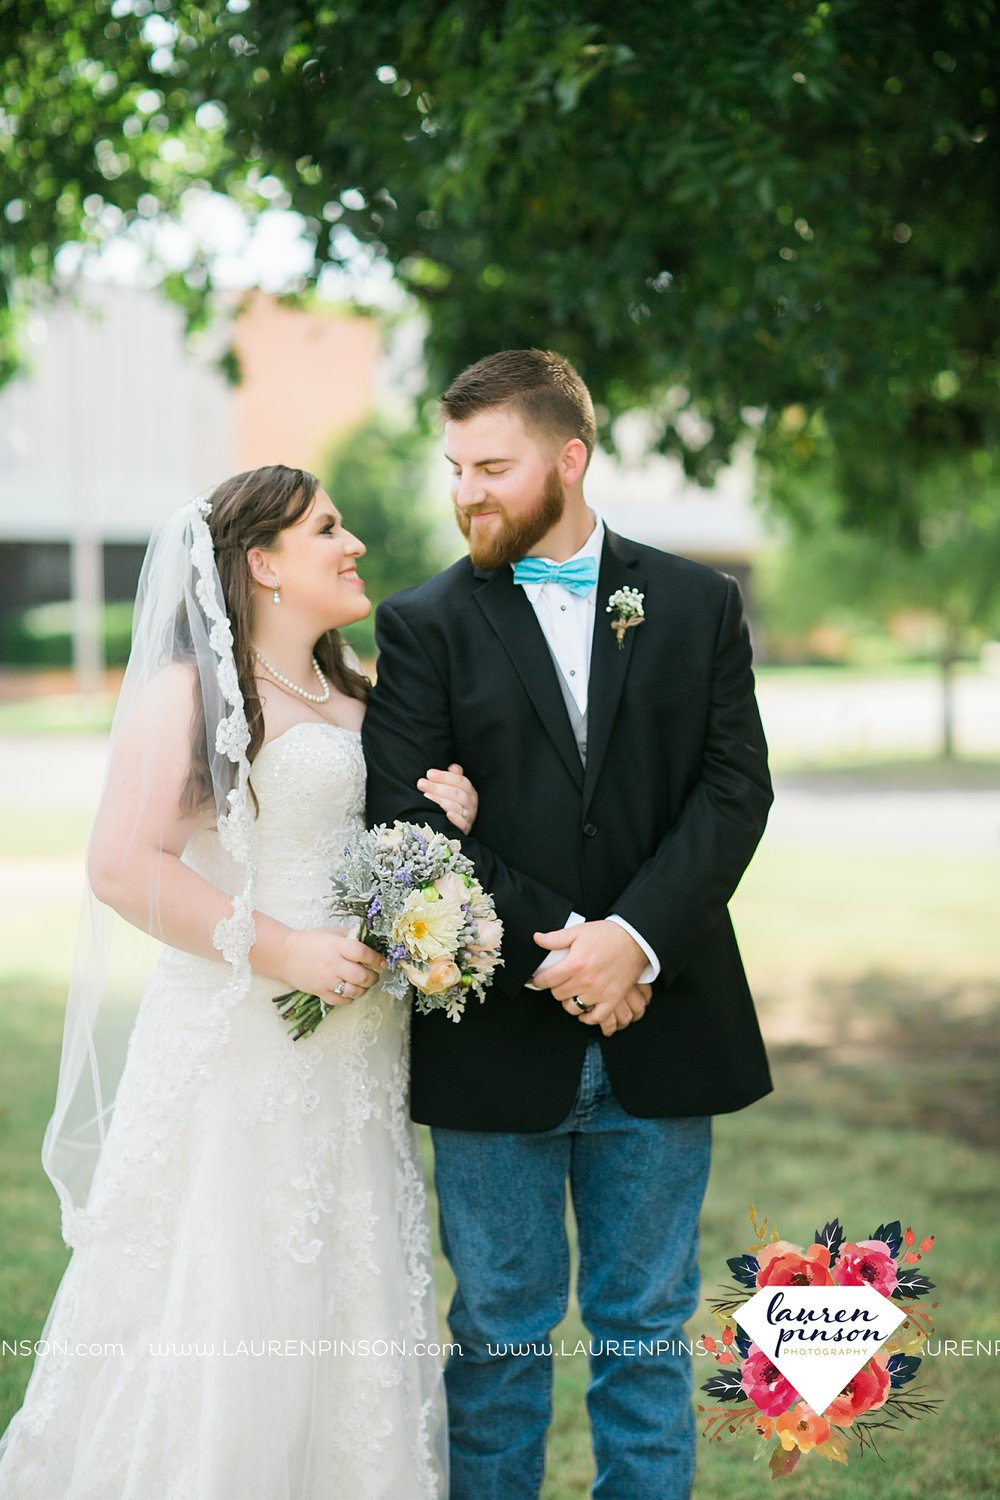 walters-oklahoma-wedding-wichita-falls-photographer_3333.jpg